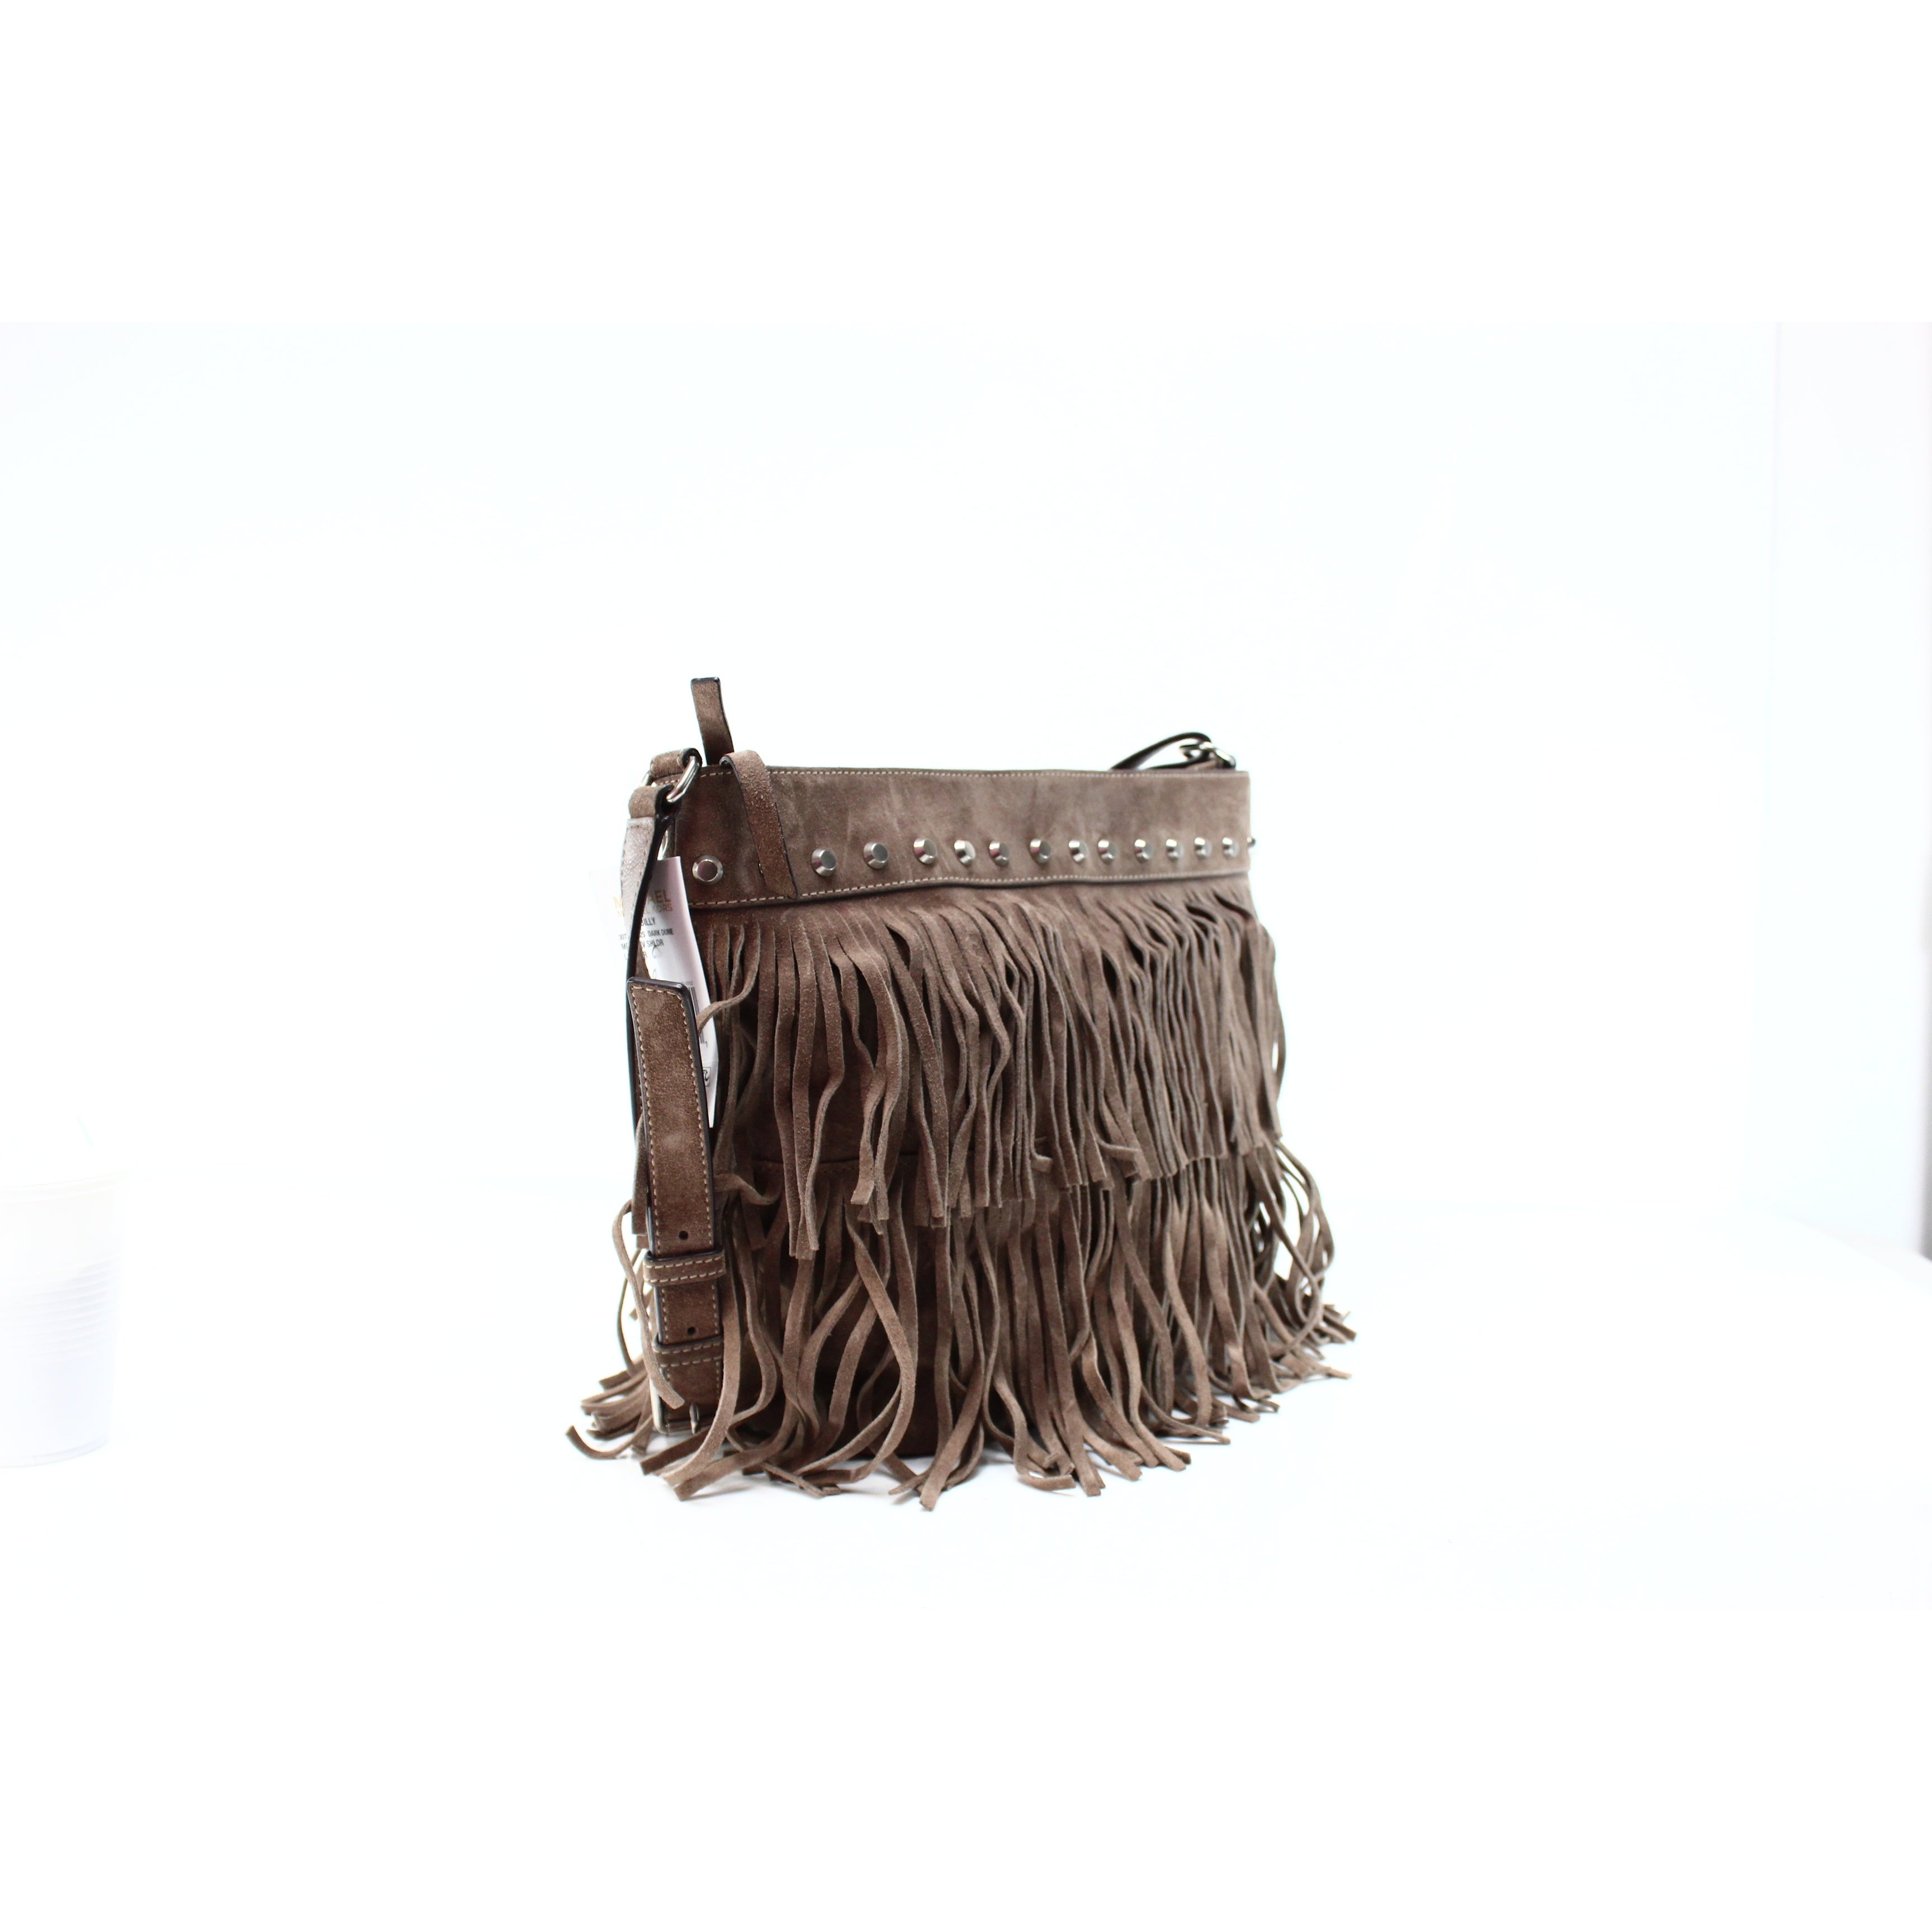 0763727a524def Shop Michael Kors NEW Beige Suede Hobo Billy Fringe Shoulder Bag Purse - Free  Shipping Today - Overstock - 17273652